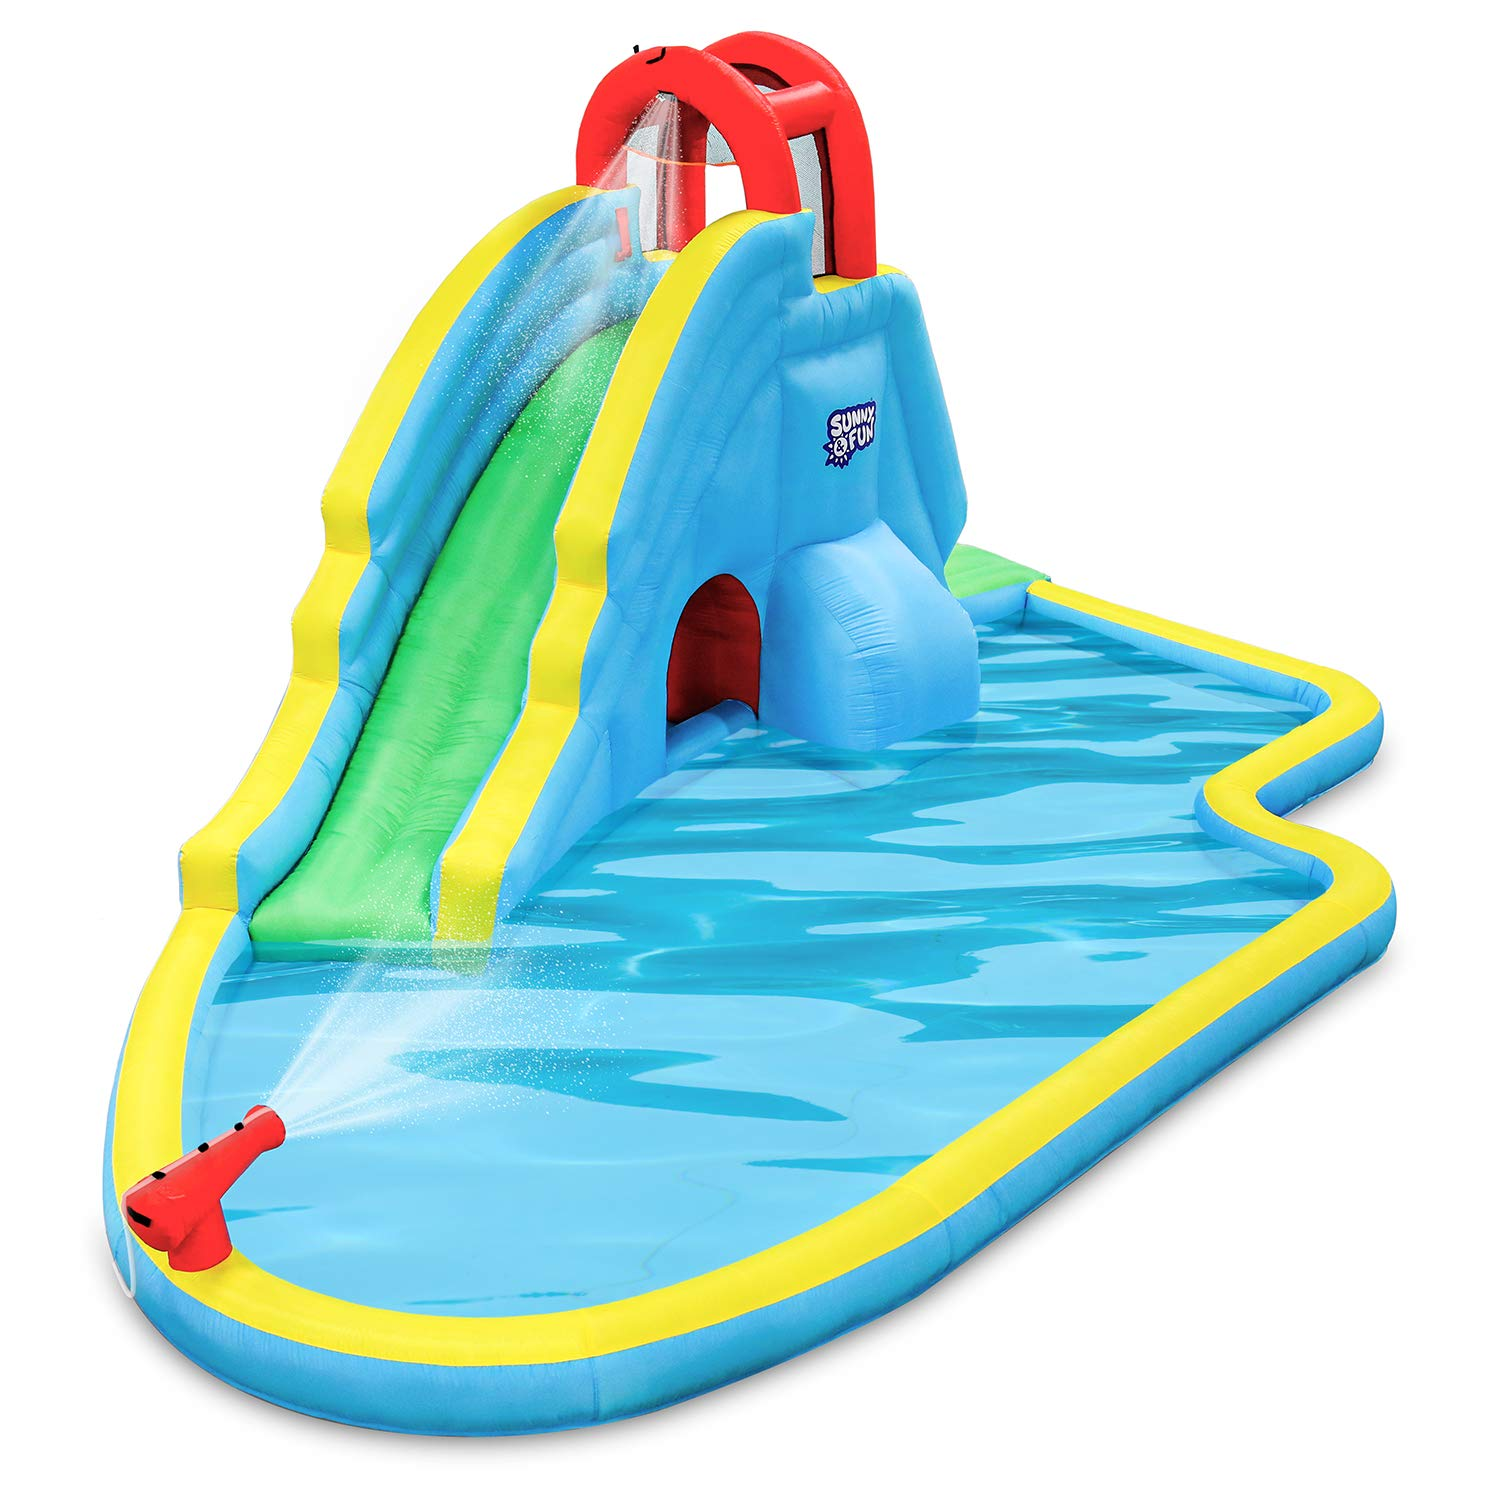 Top 7 Best Water Slide Pools Inflatable (2019 Reviews) 1